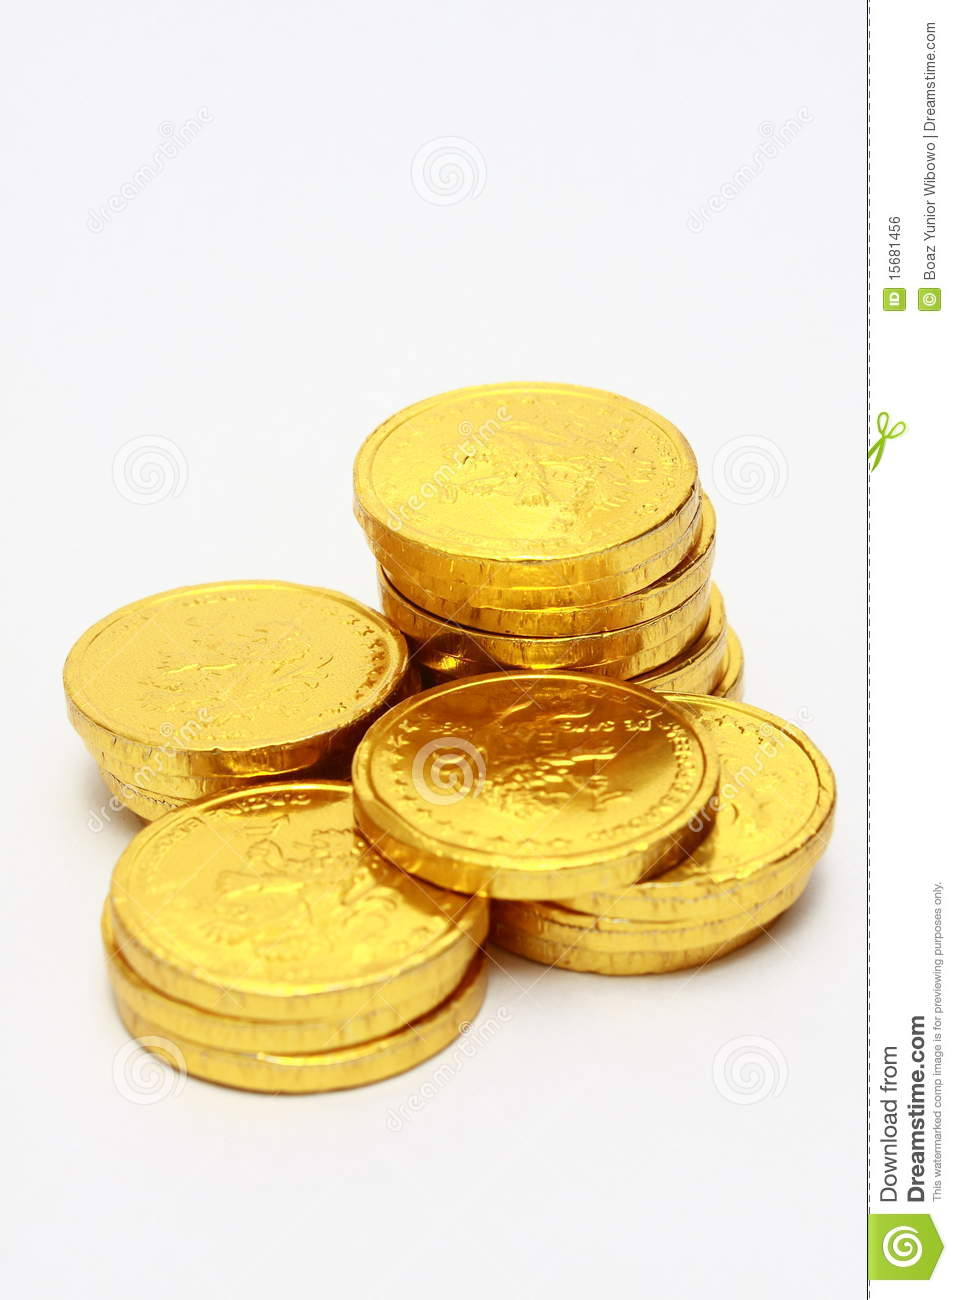 Chocolate Gold Coin Stacks Royalty Free Stock Image - Image: 15681456